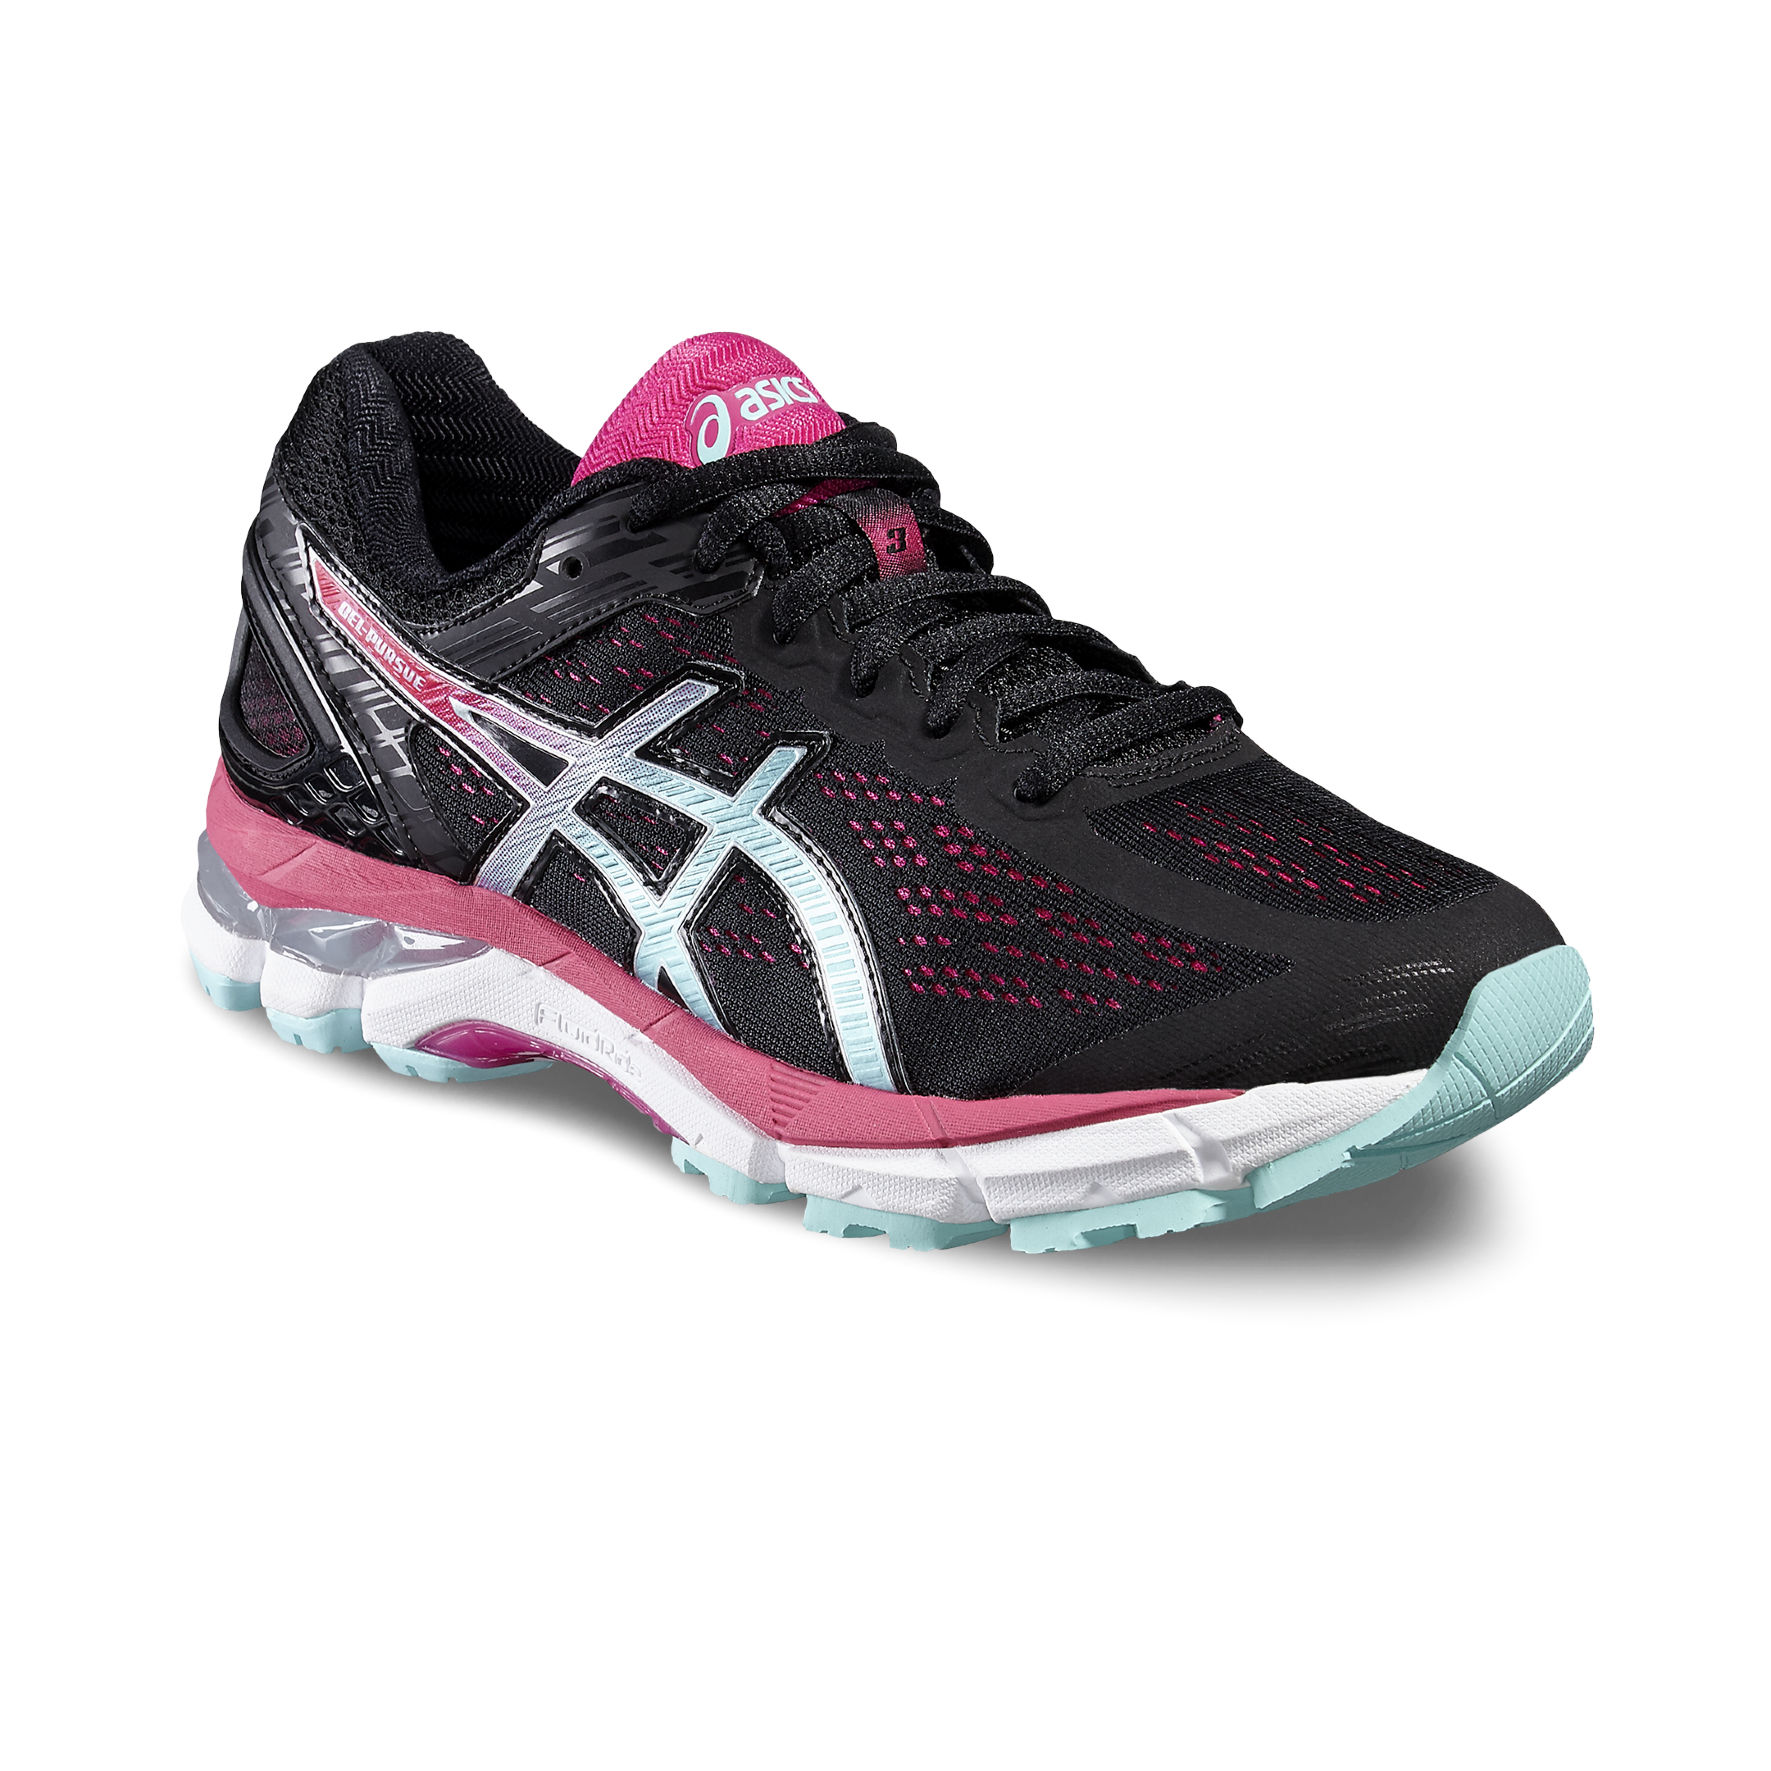 Asics Lady Gel Pursue 3 in Schwarz Lila